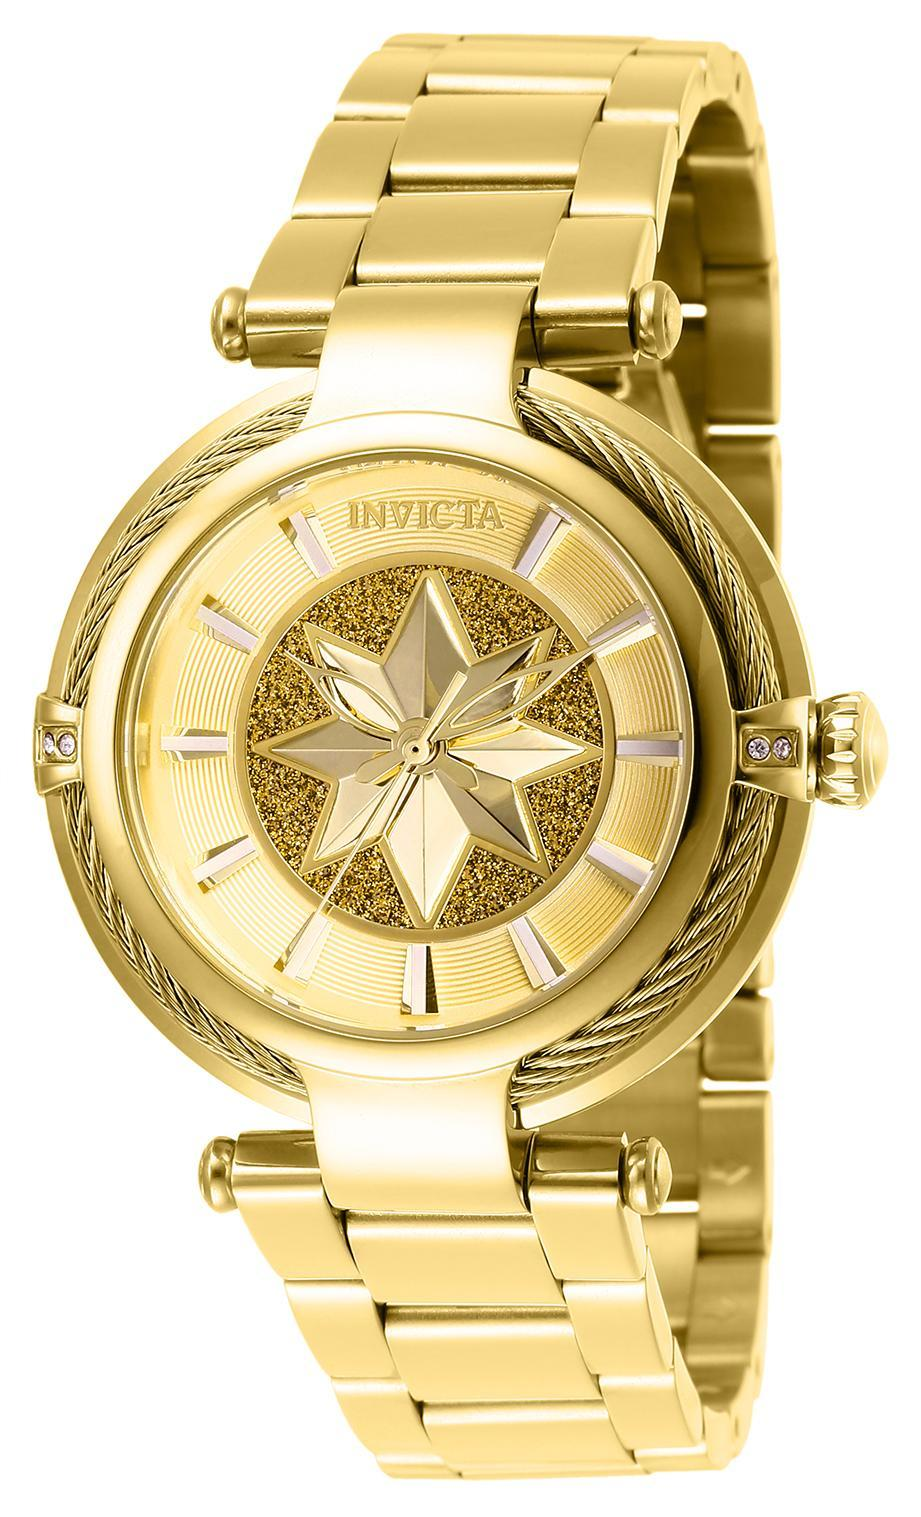 Captain Marvel Invicta gold watch (also available in rose gold), $279 (Photo: Invicta)